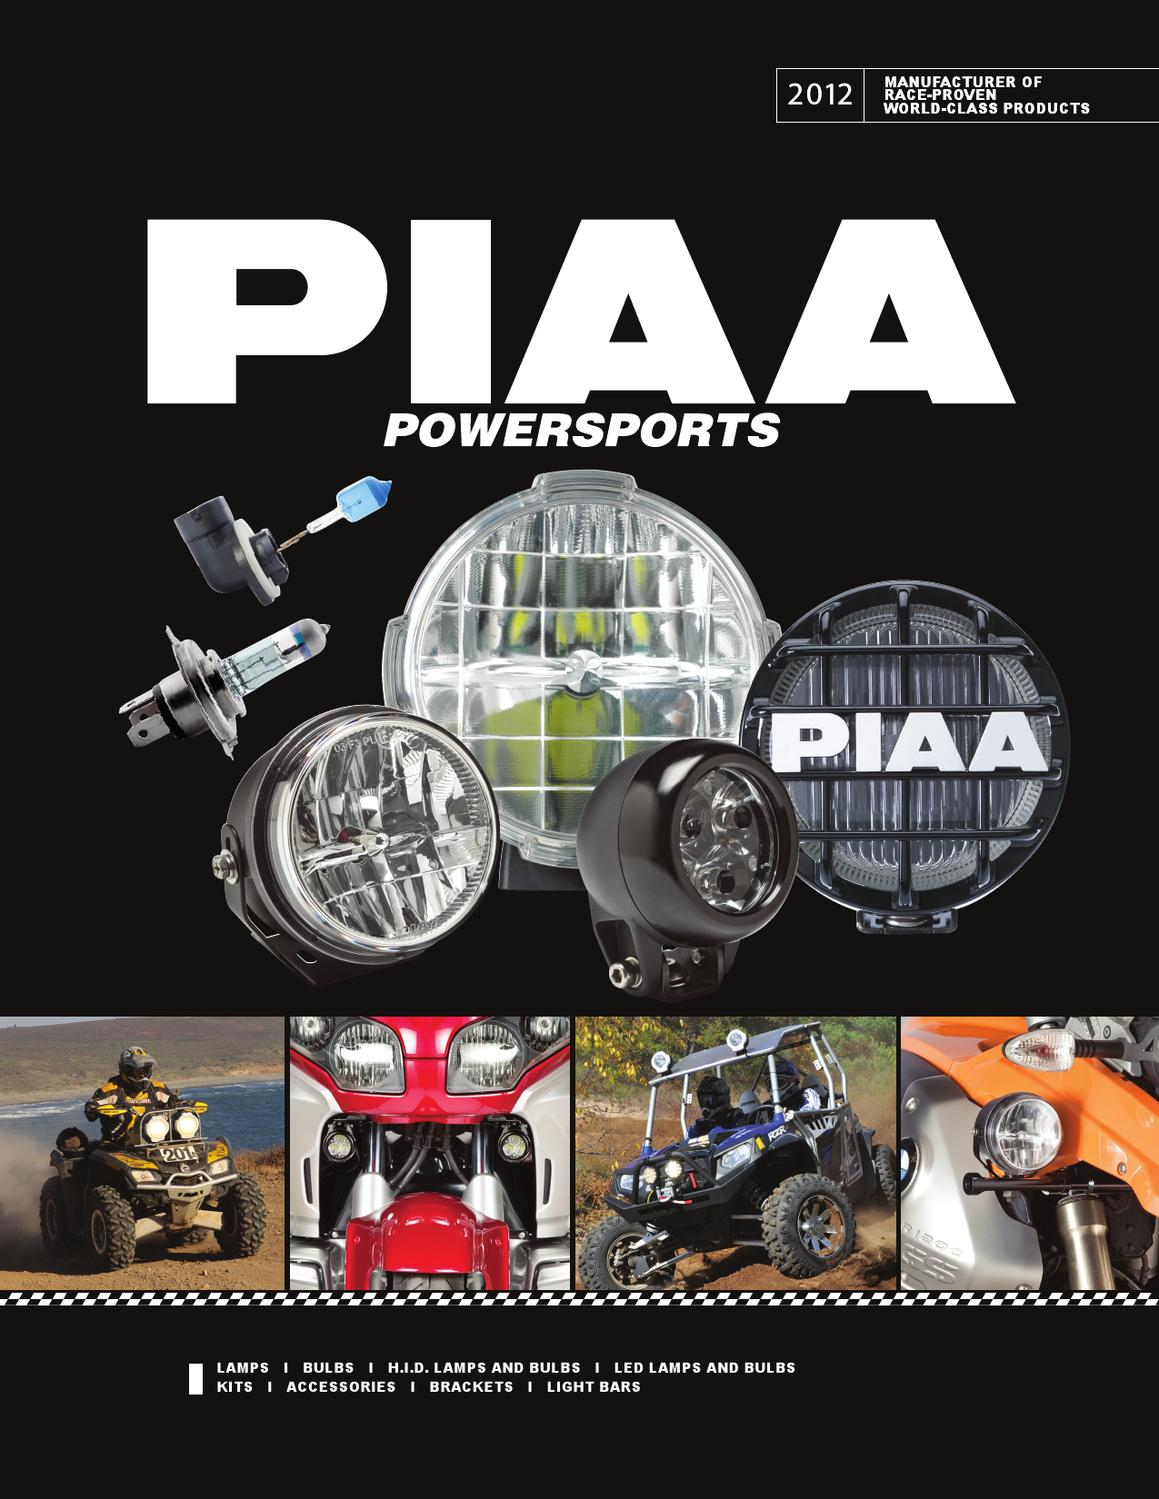 Piaa 2012 2013 Powersports Catalog By Curt Bryant Issuu Lp530 Led Wiring Harness